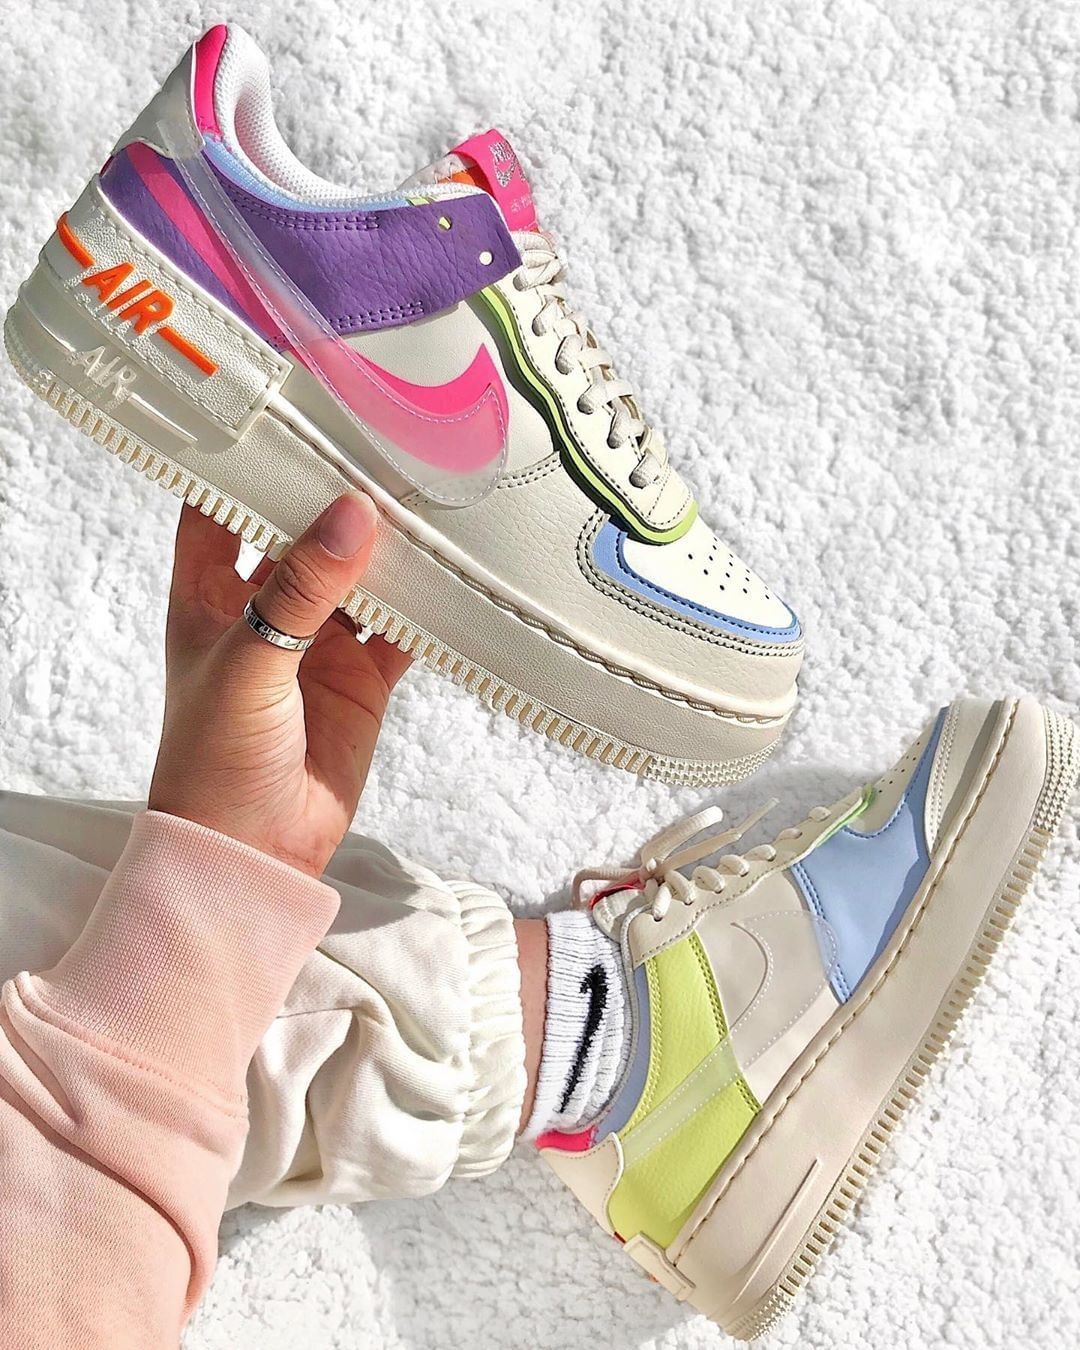 "Wethenew on Instagram ""🌈 ⠀⠀⠀⠀⠀⠀⠀⠀⠀⠀⠀⠀⠀⠀⠀⠀⠀⠀ La Nike Air"